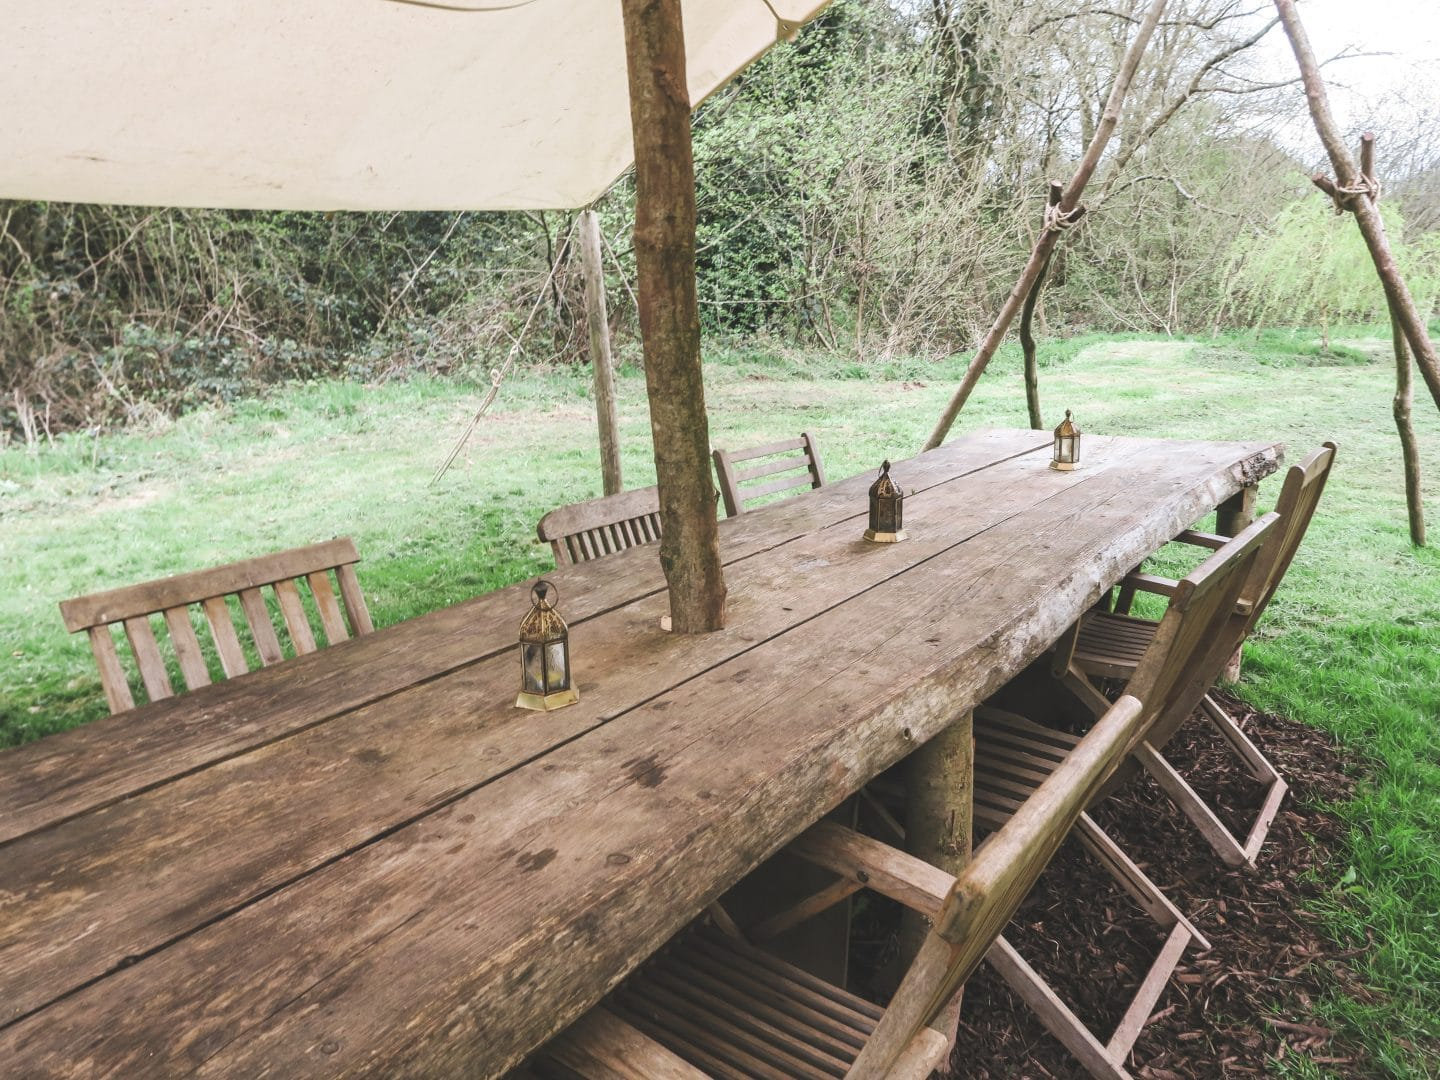 Outdoor Dining at Hidden Valley Yurts | Curiously Conscious